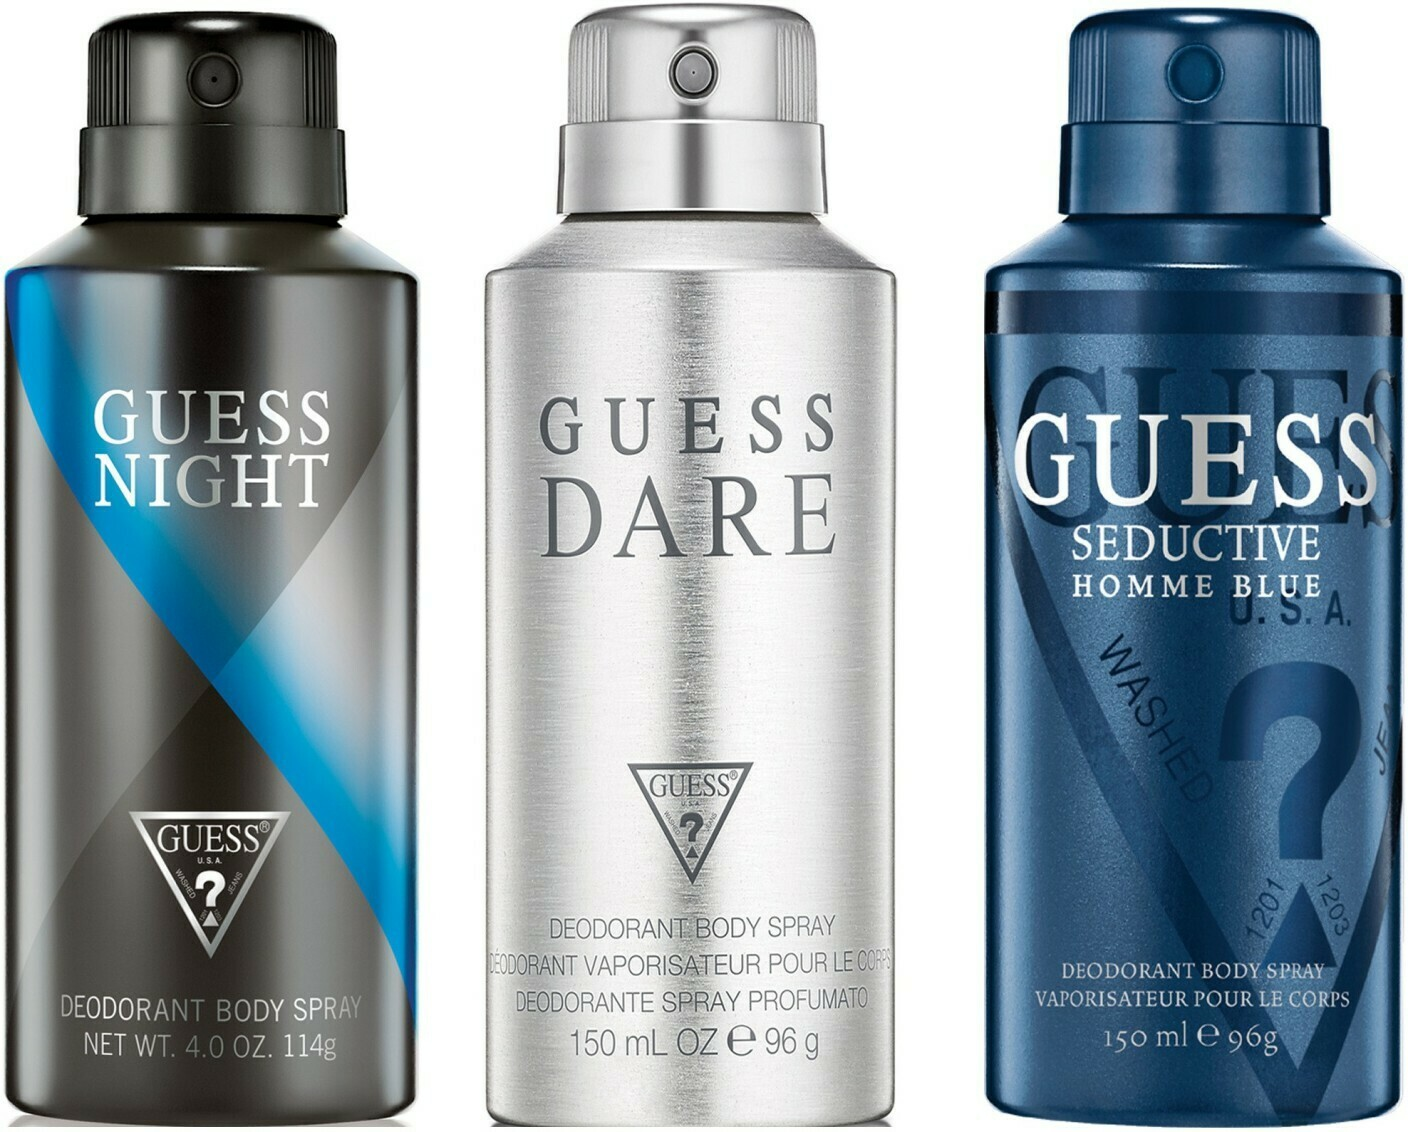 Guess Night + Seductive Home Blue + Dare Deo Combo Set - Pack of 3